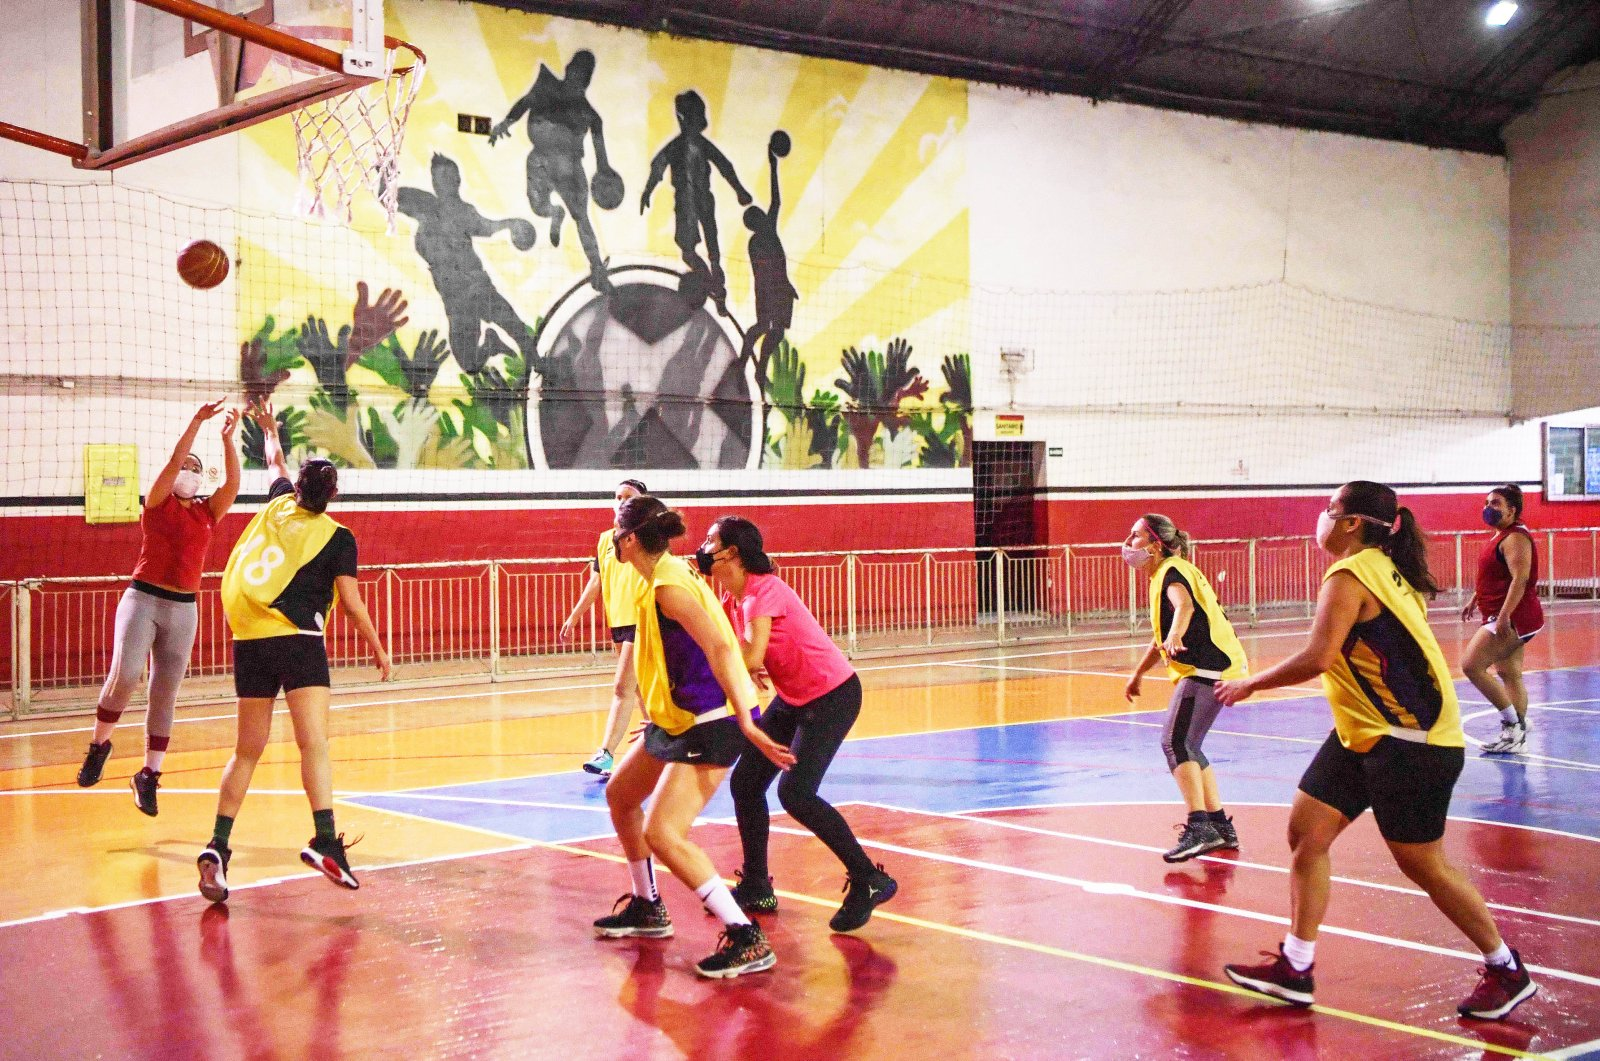 Fulaninhas amateur basketball team players in action during a training session in Sao Paulo, Brazil, Oct. 6, 2021. (AFP Photo)